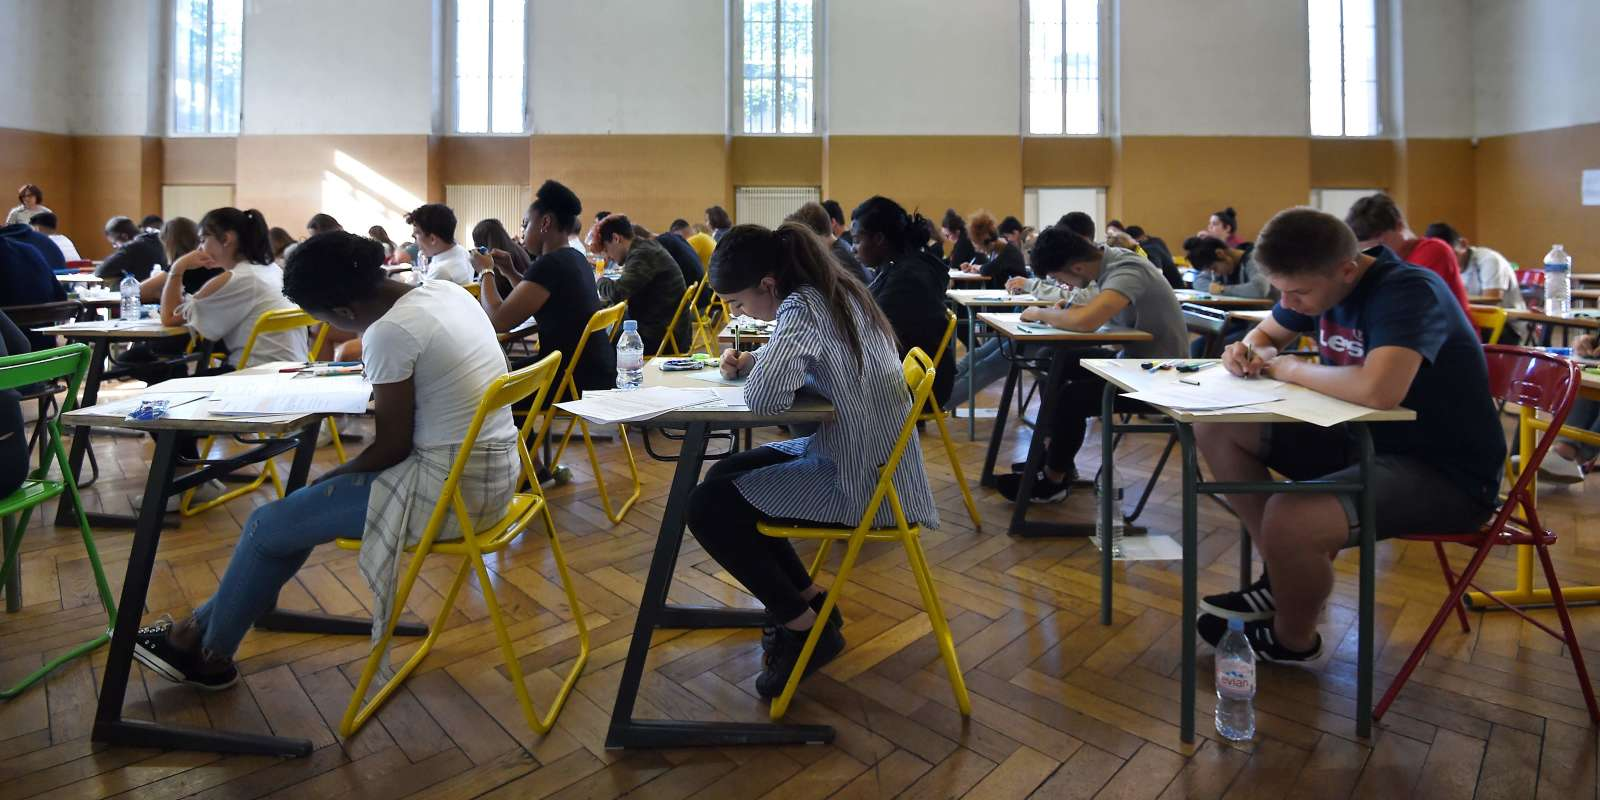 High school students work on a 4 hours philosophy dissertation, that kicks off the French general baccalaureat exam for getting into university, on June 18, 2018 at the lycee Pasteur in Strasbourg, eastern France. / AFP / FREDERICK FLORIN